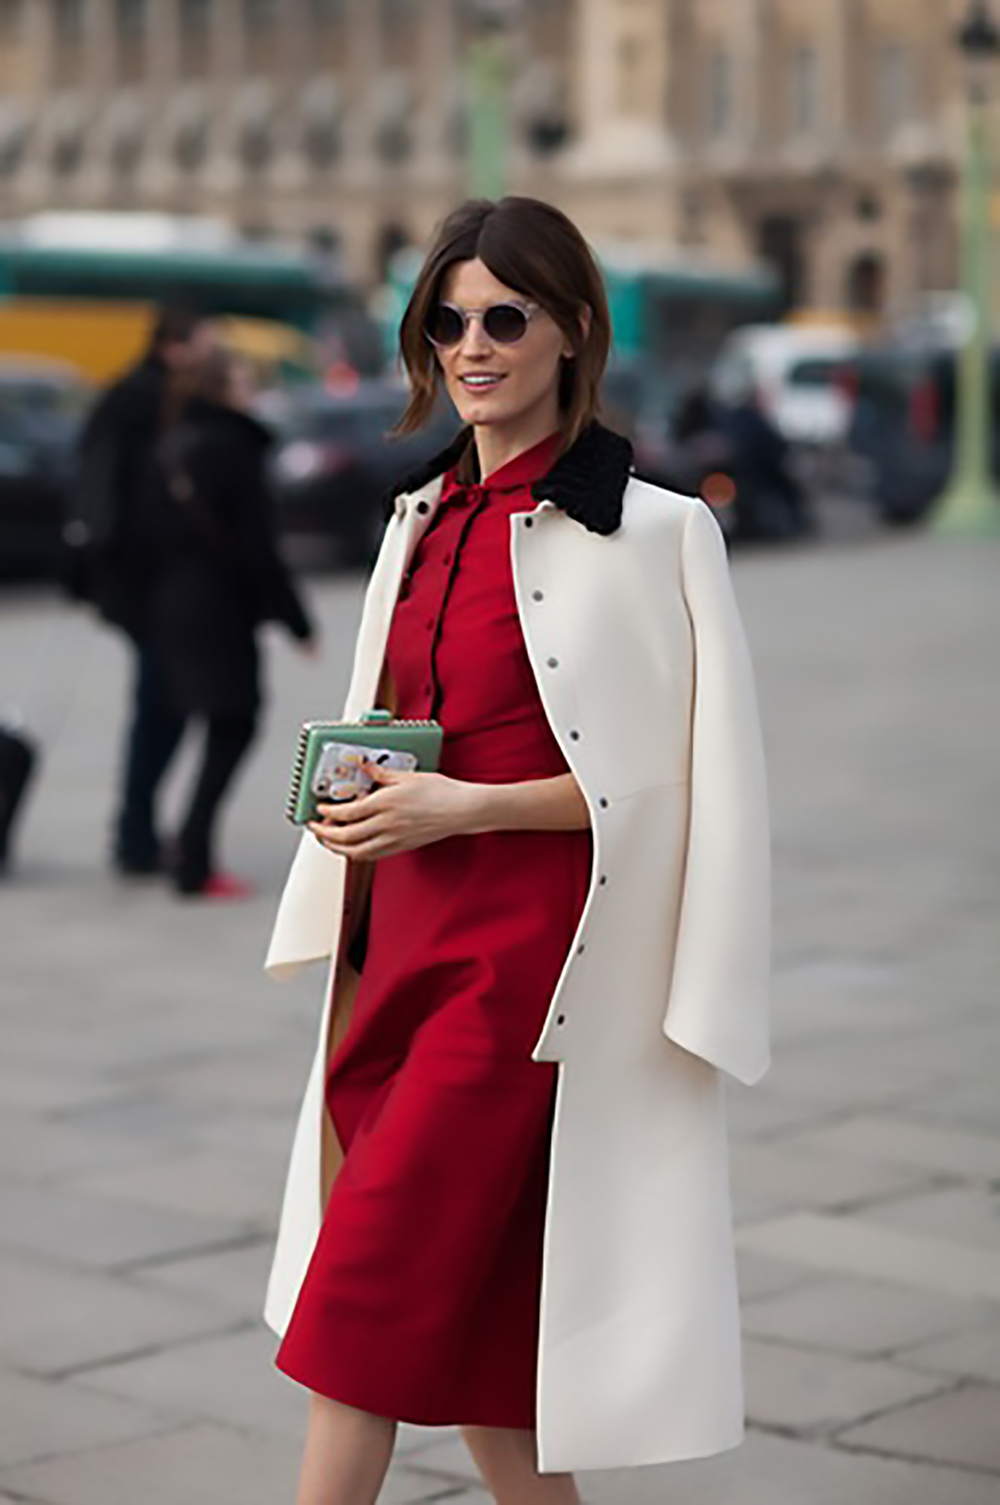 harpers bazaar paris street style 2013 28 of 192 jackets over shoulders 1500.jpg